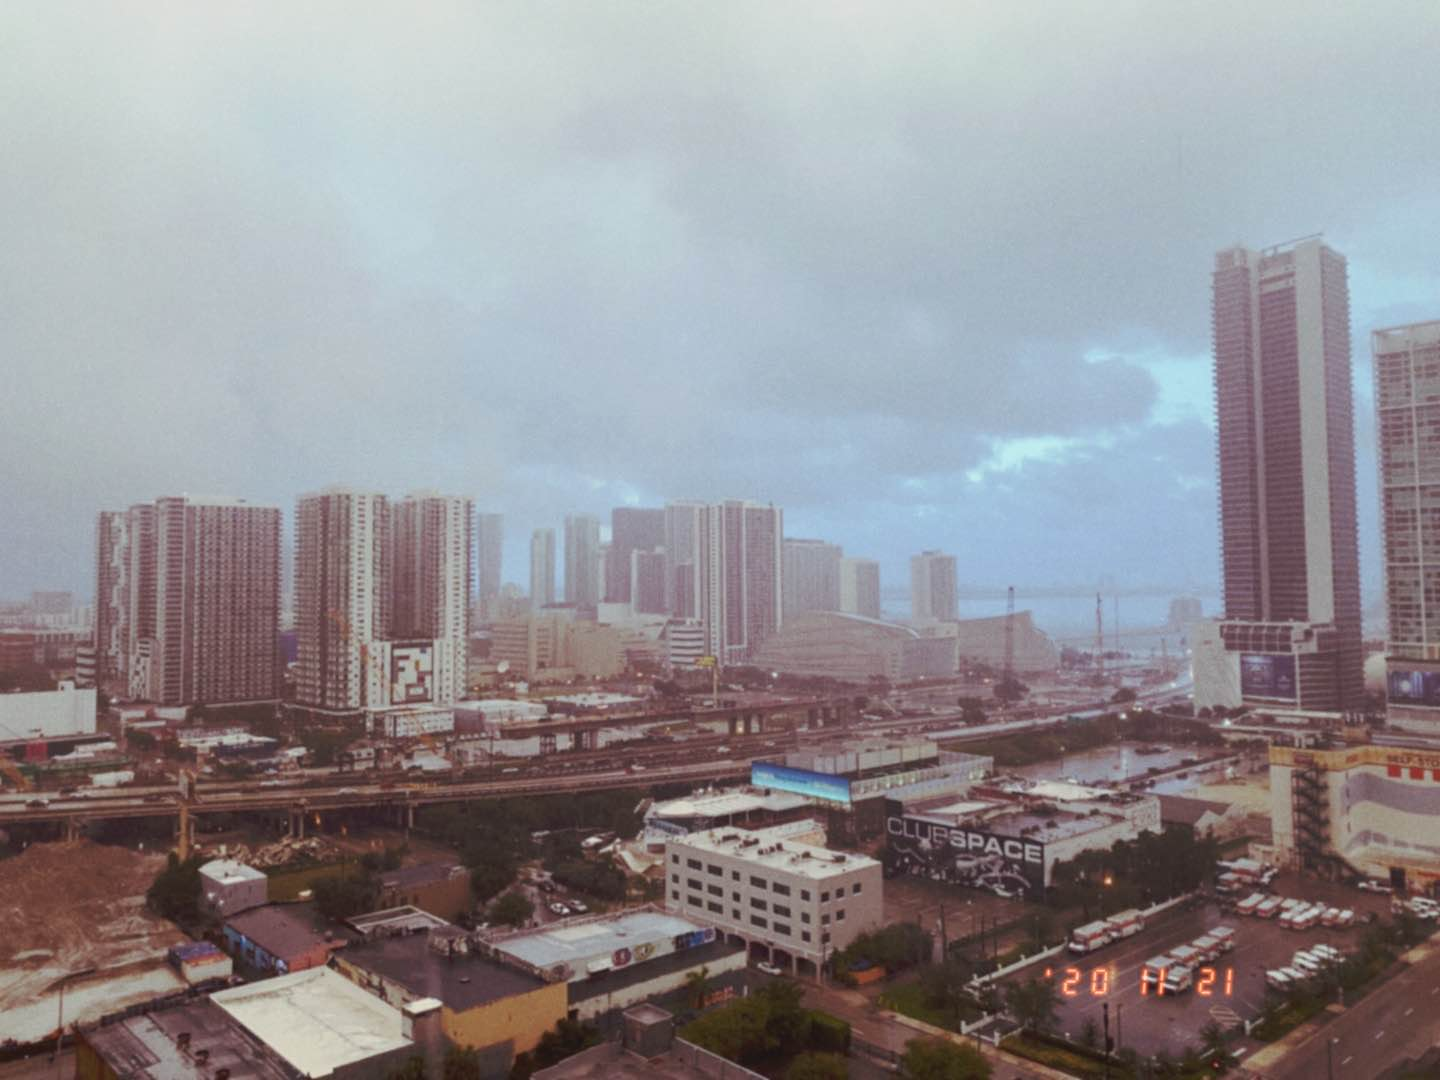 Miami, FL during rainshower. Skyscrapers to the right.